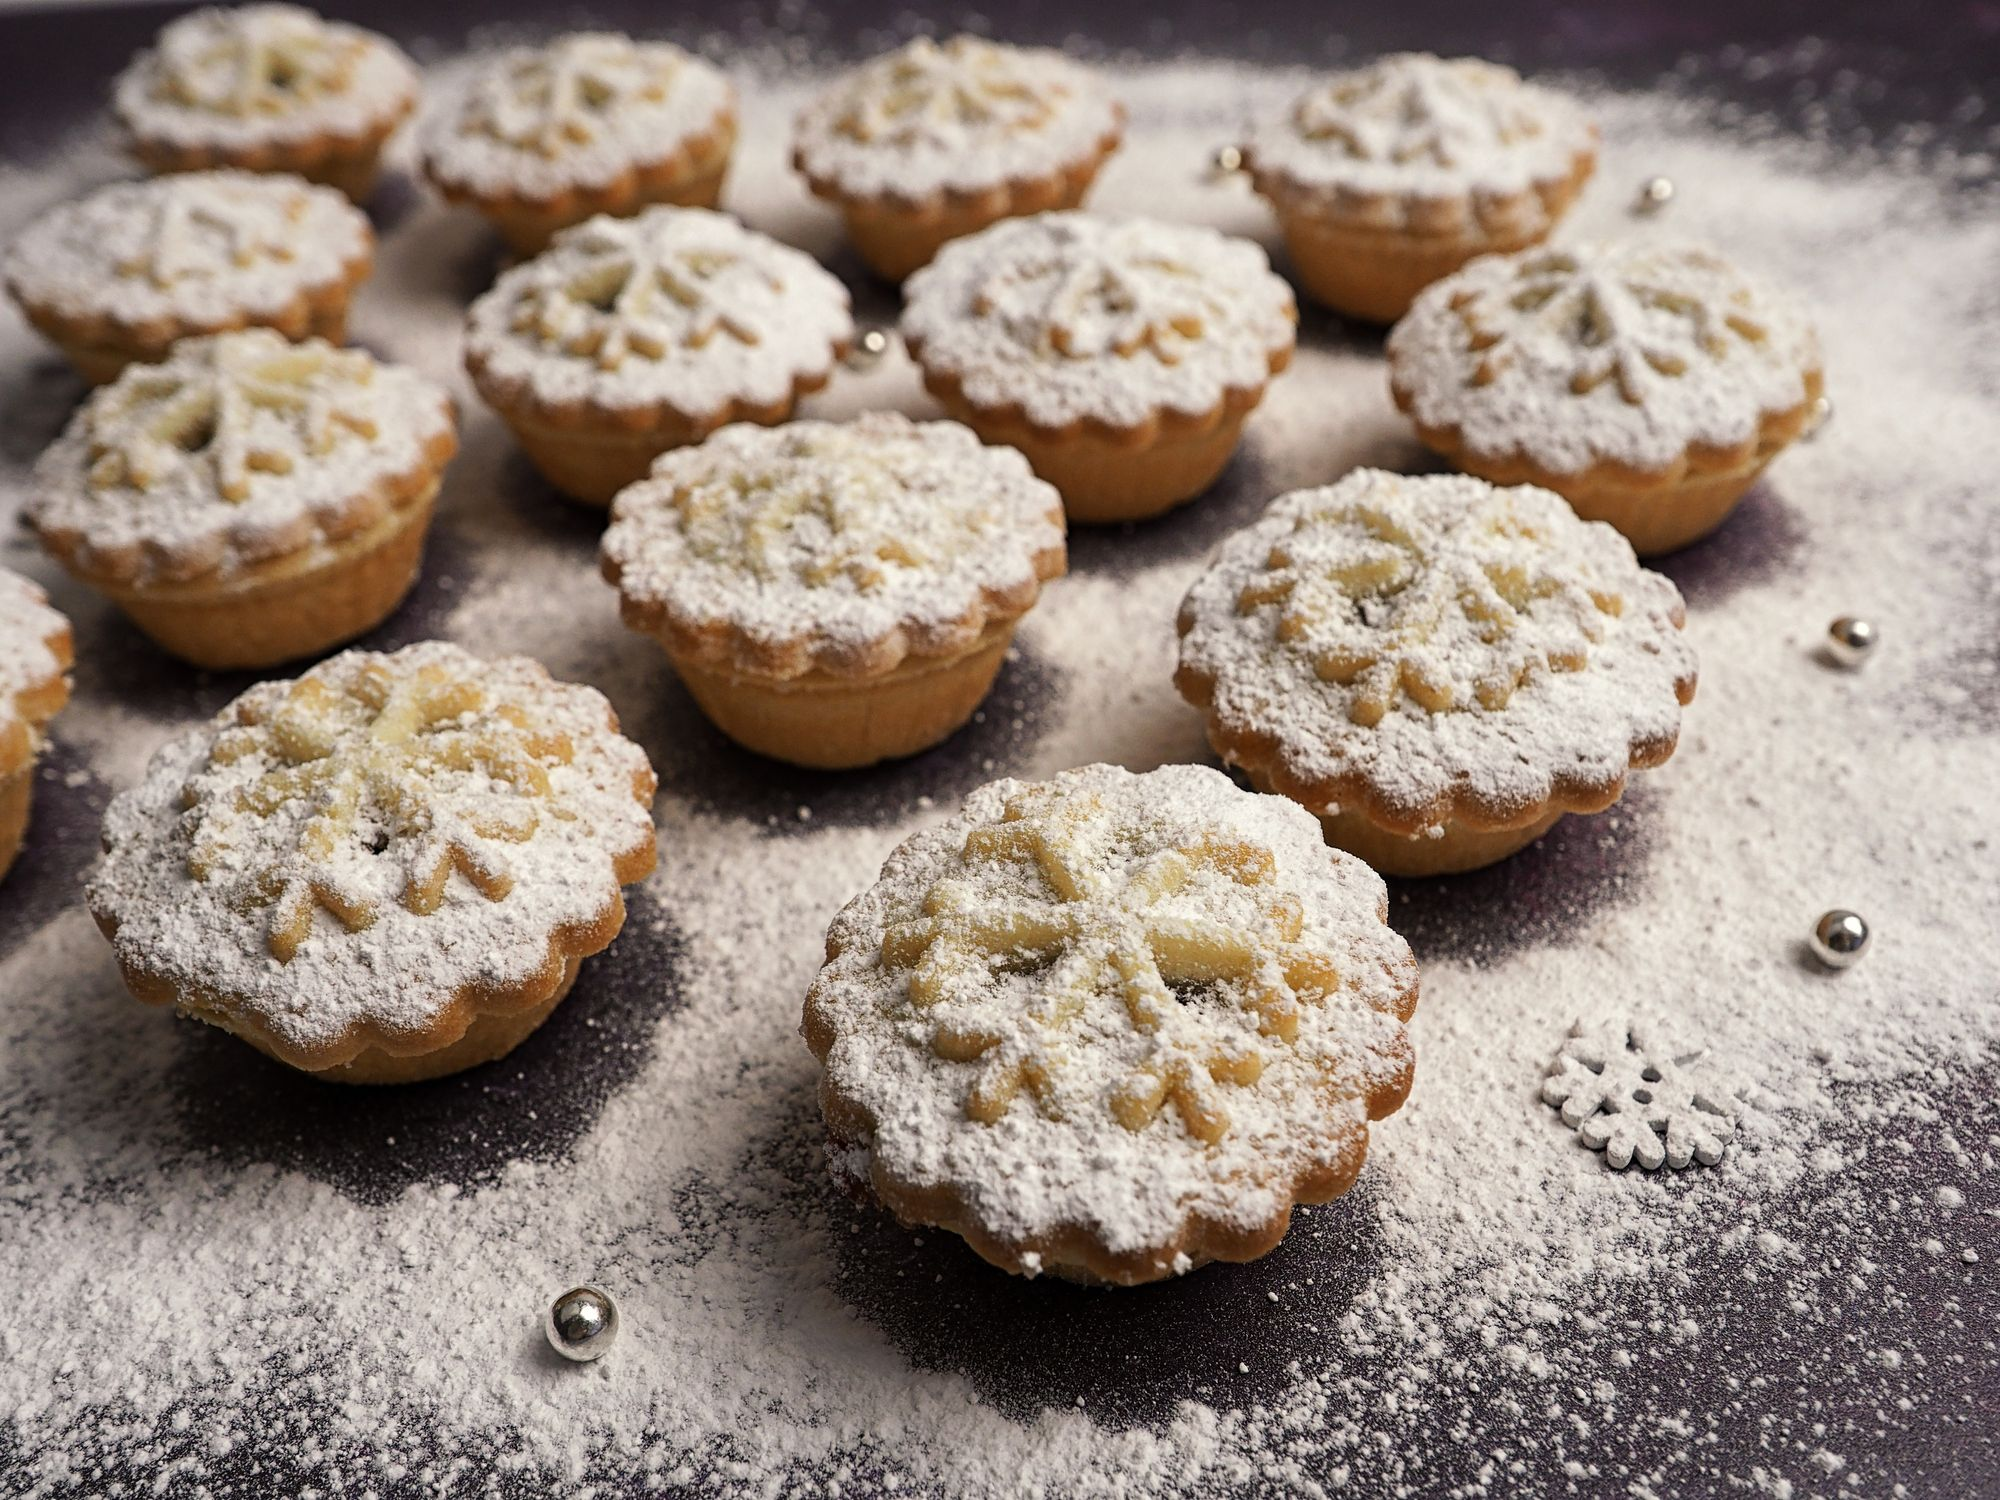 Stock up on the very best mince pies this Christmas